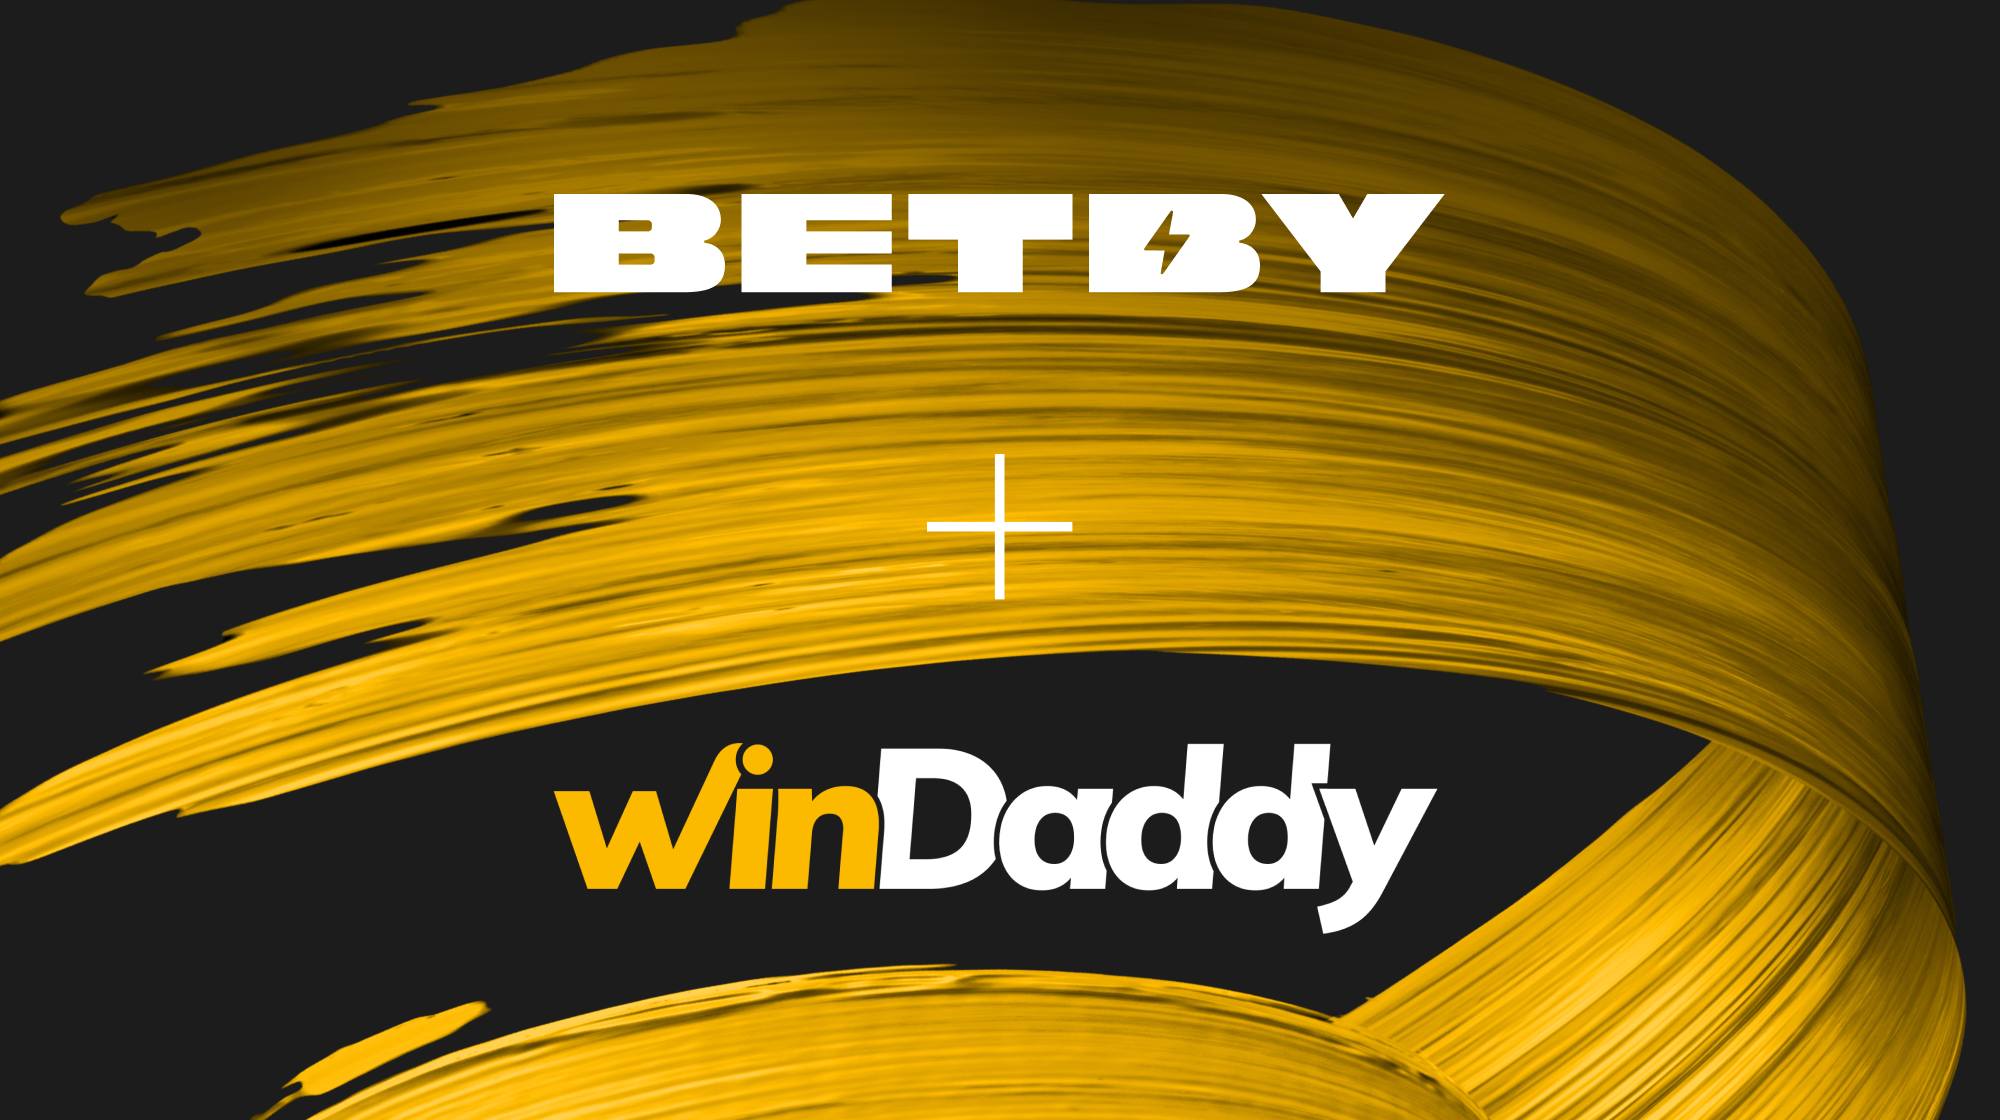 BETBY TAKES FULL SOLUTION LIVE WITH WINDADDY